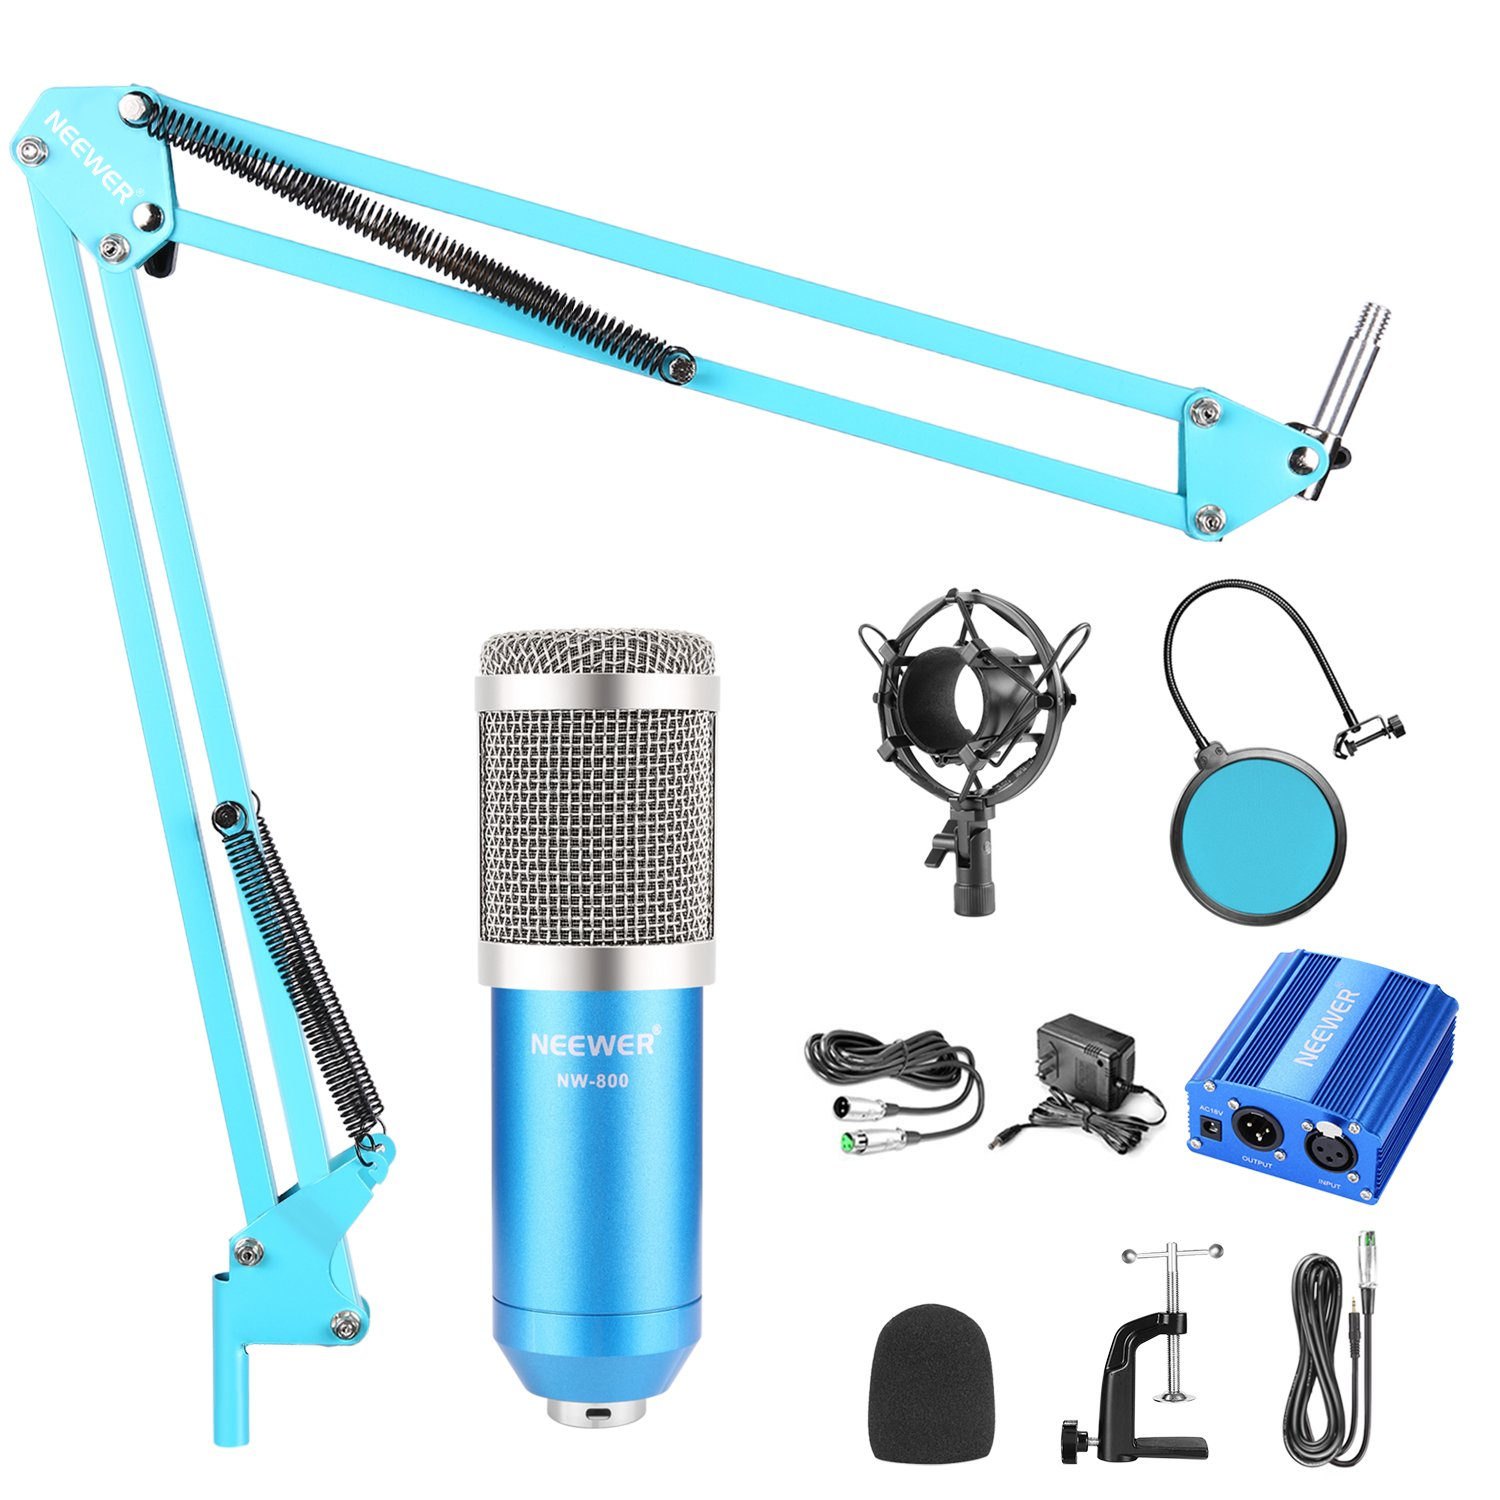 Amazon.com: Neewer Condenser Microphone Kit: Musical Instruments